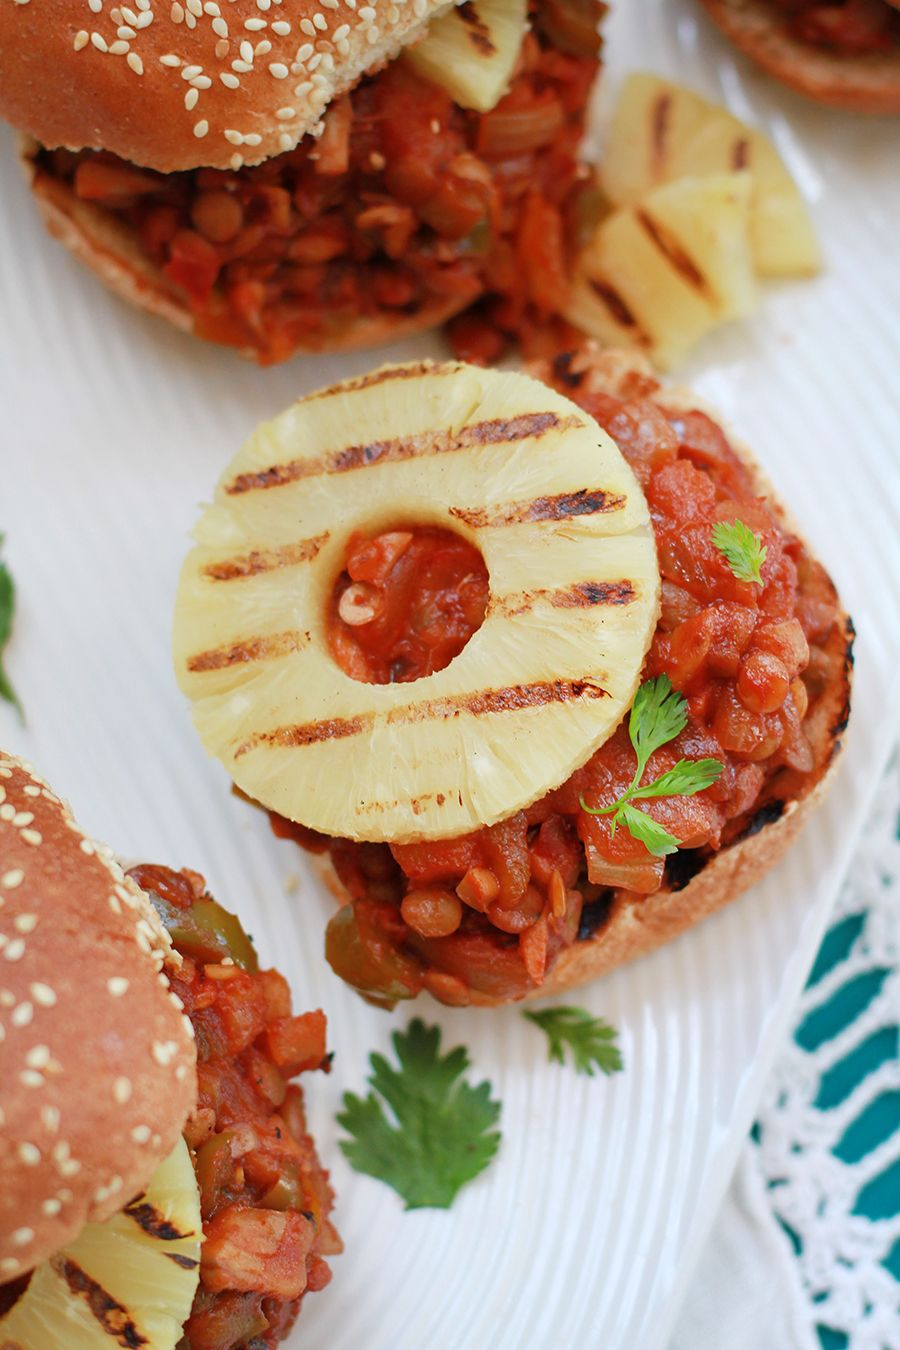 Delicious vegan recipes from earth balance have fun